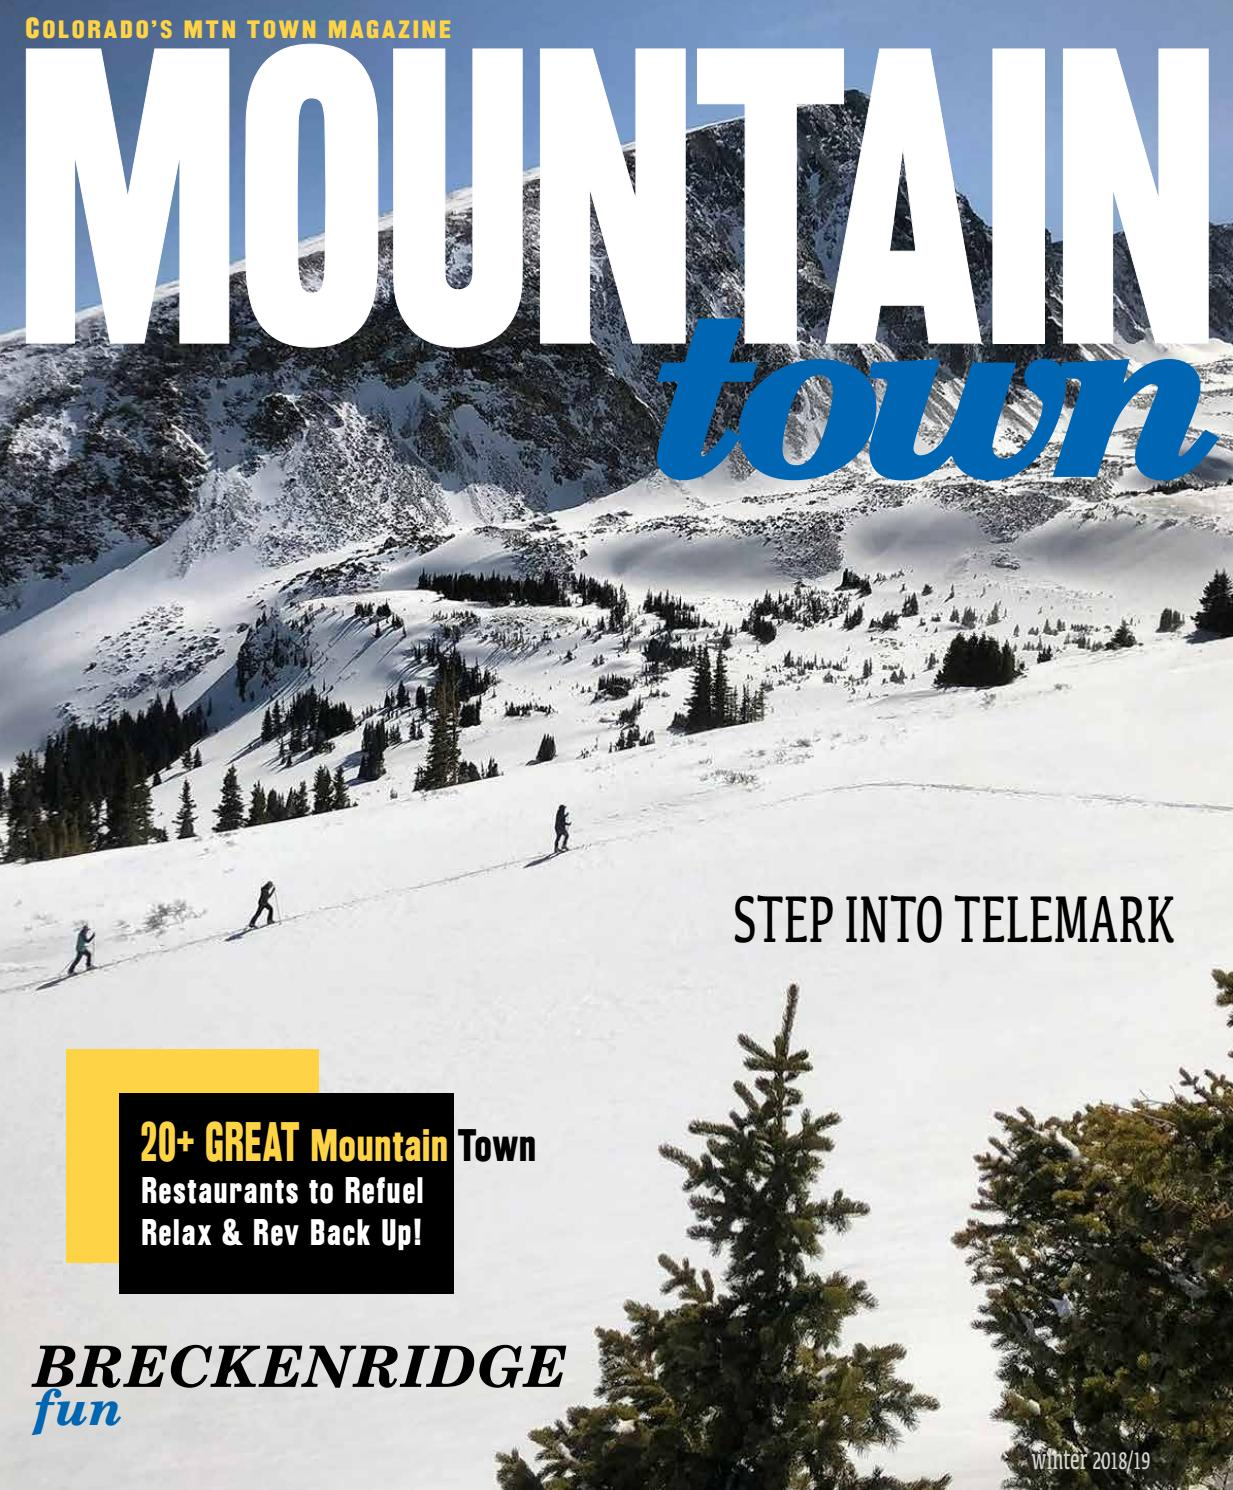 Mountain Town Magazine - Colorado Winter 2018/19 by Mountain